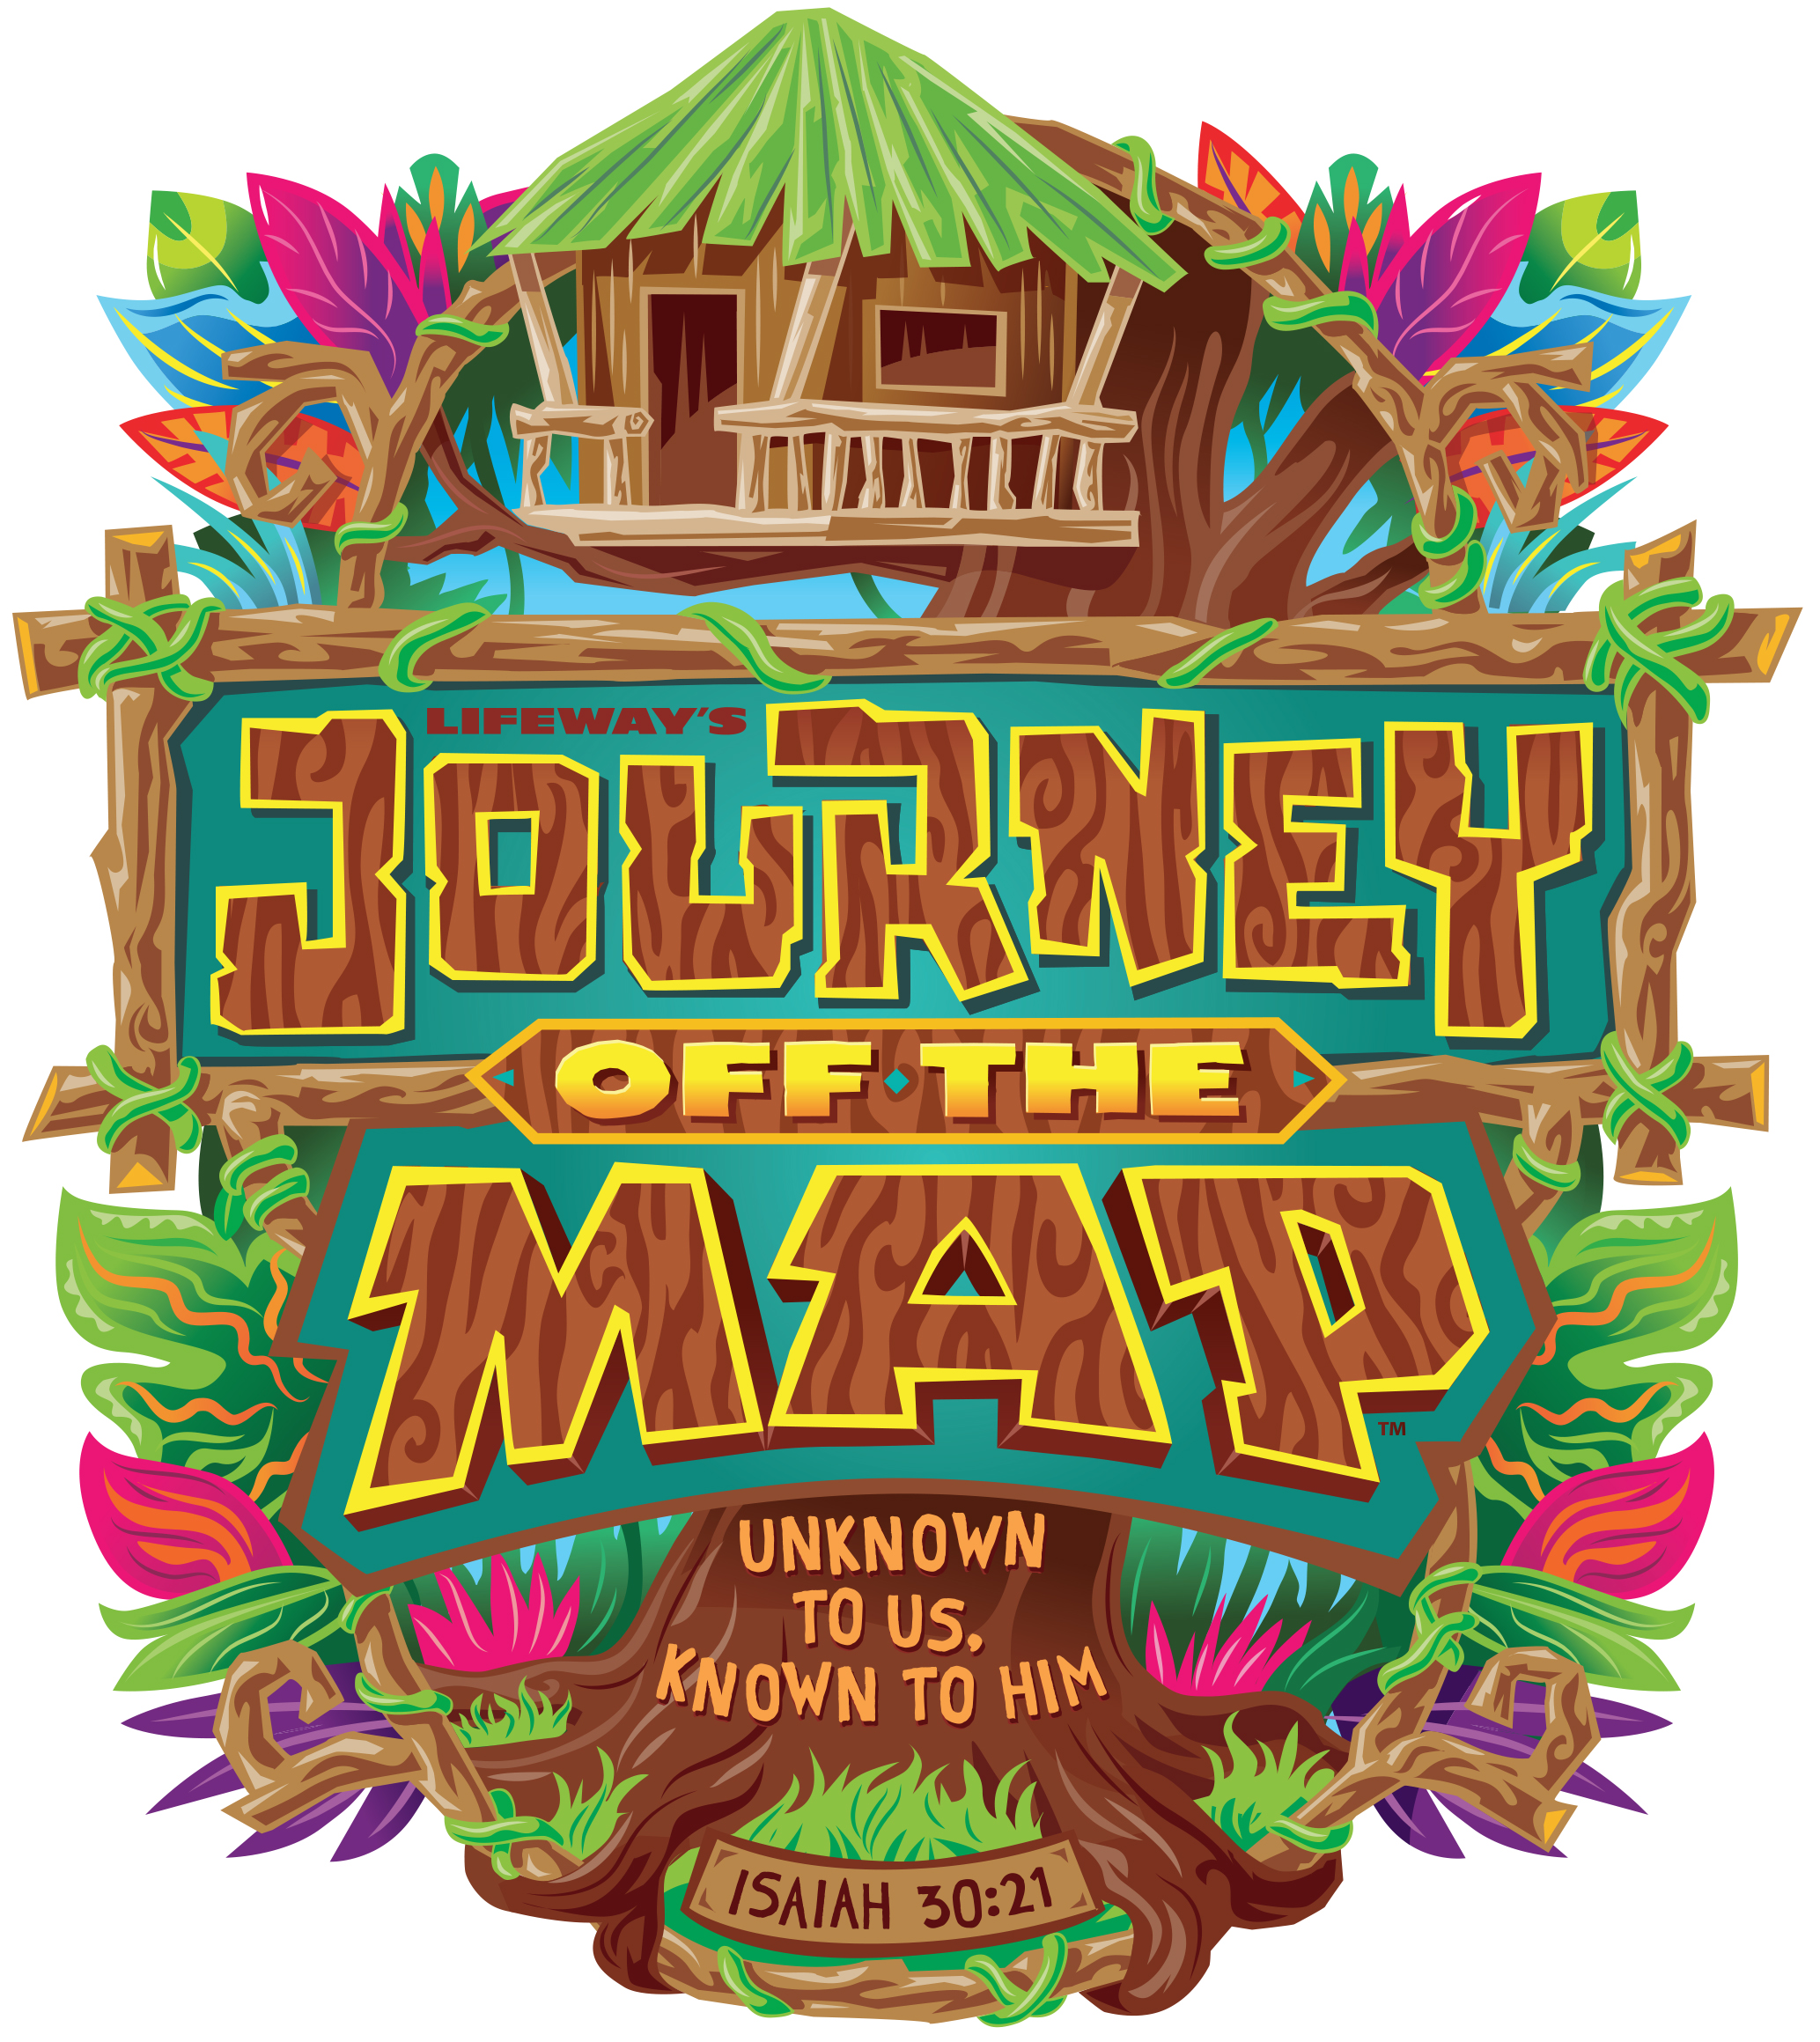 VBS 2015 Journey Off The Map Ashland Events